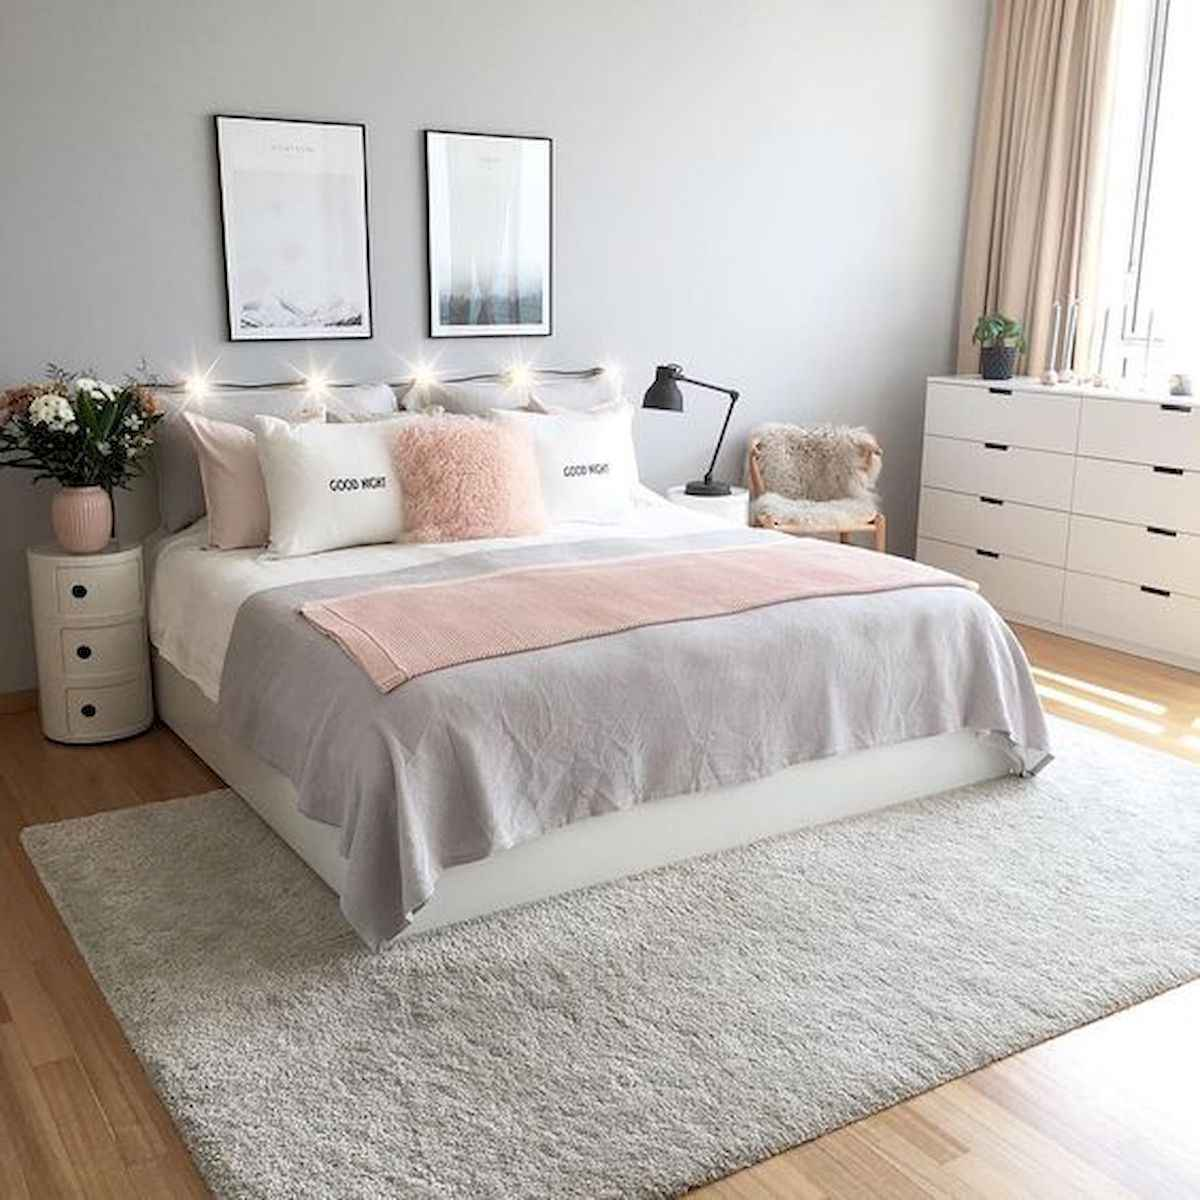 25 Best Bedroom Rug Ideas And Design (9)